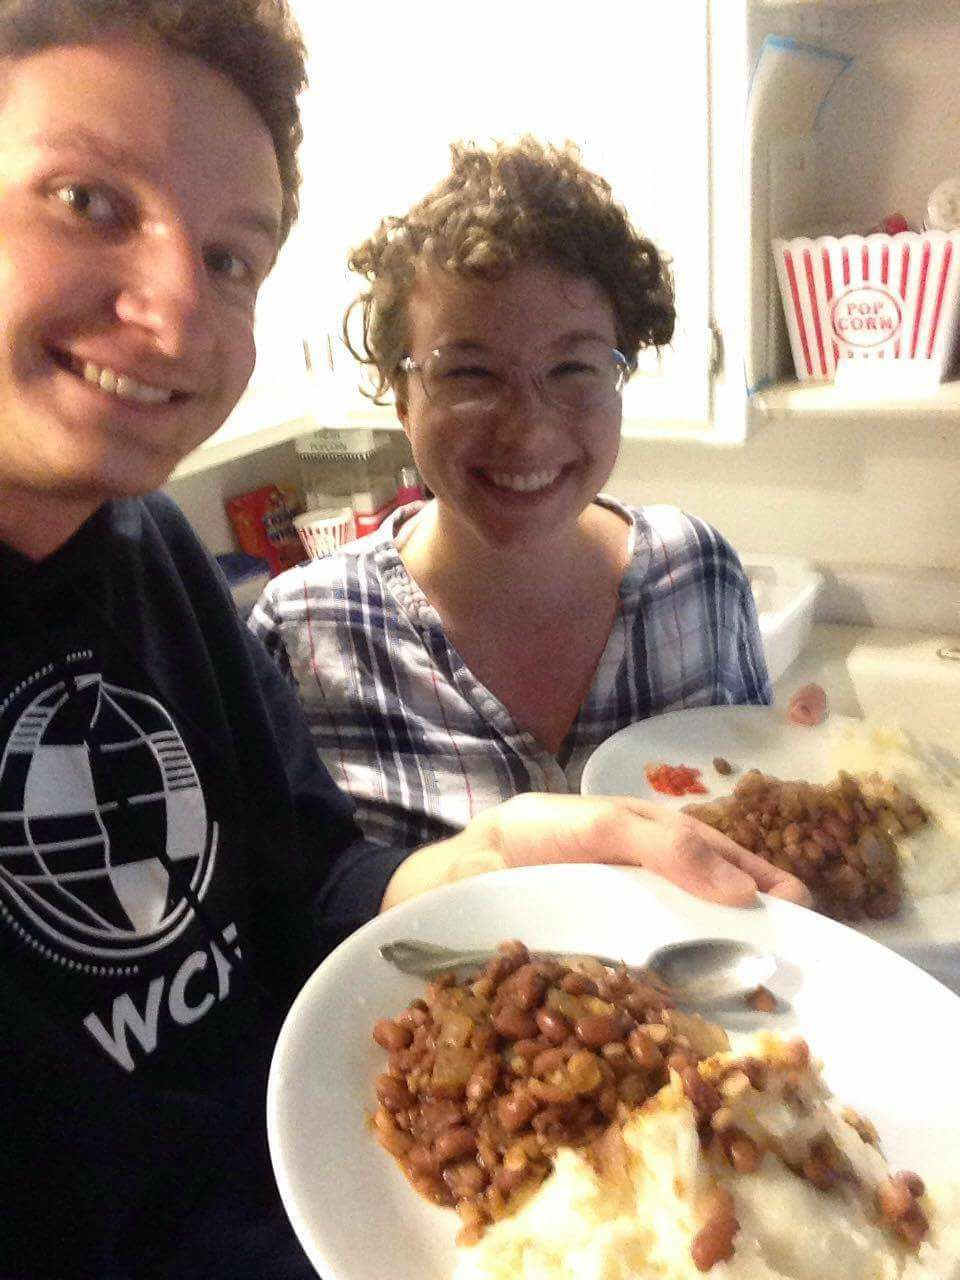 African food and friends: beans made Angolan style, foufou, pilipili PC: KSB